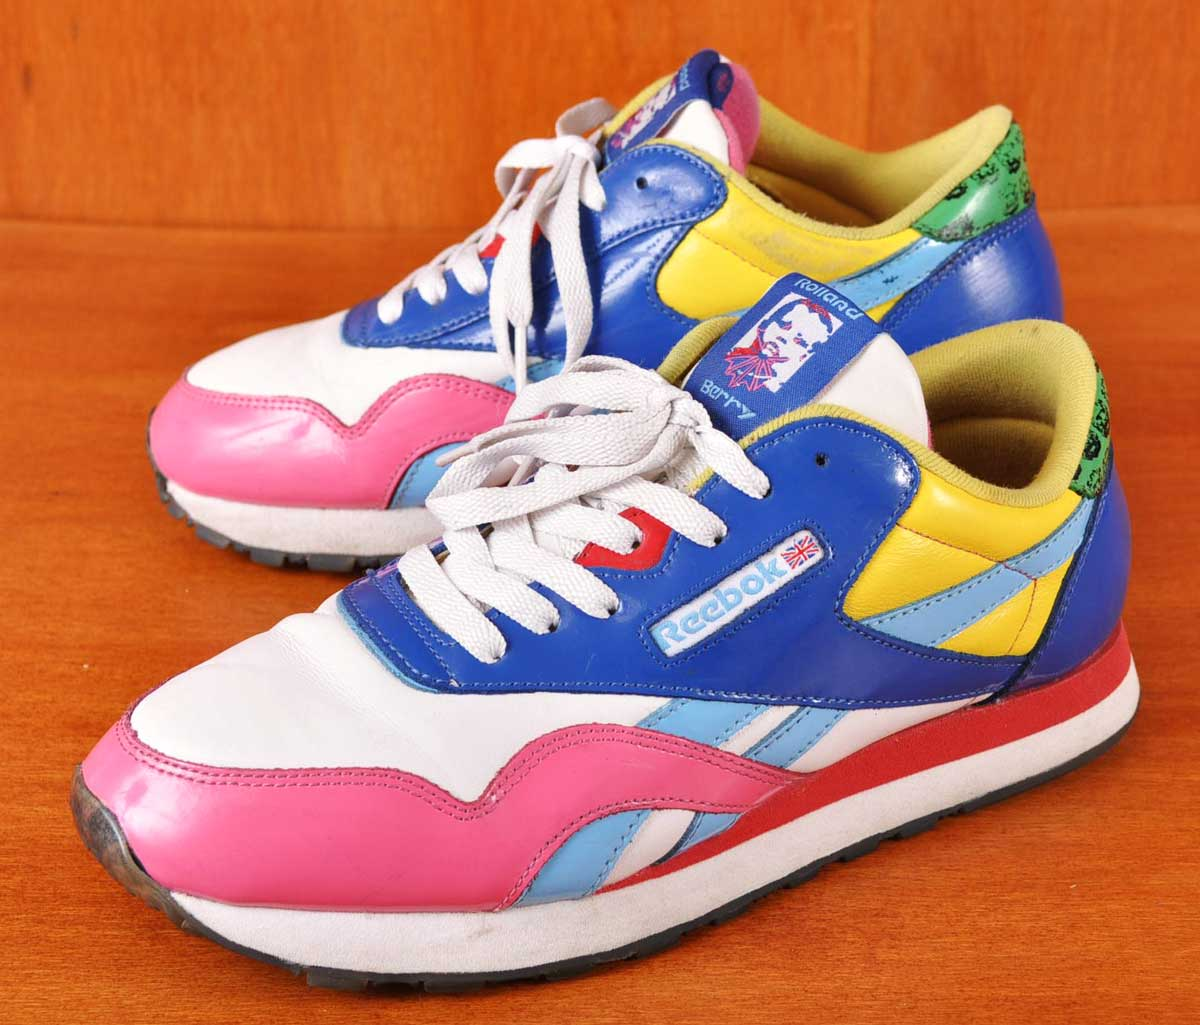 best website 154a3 59cc9 Reebok×Rolland Berry Reebok x Roland very classic   CLASSIC   shoes    multi- ...